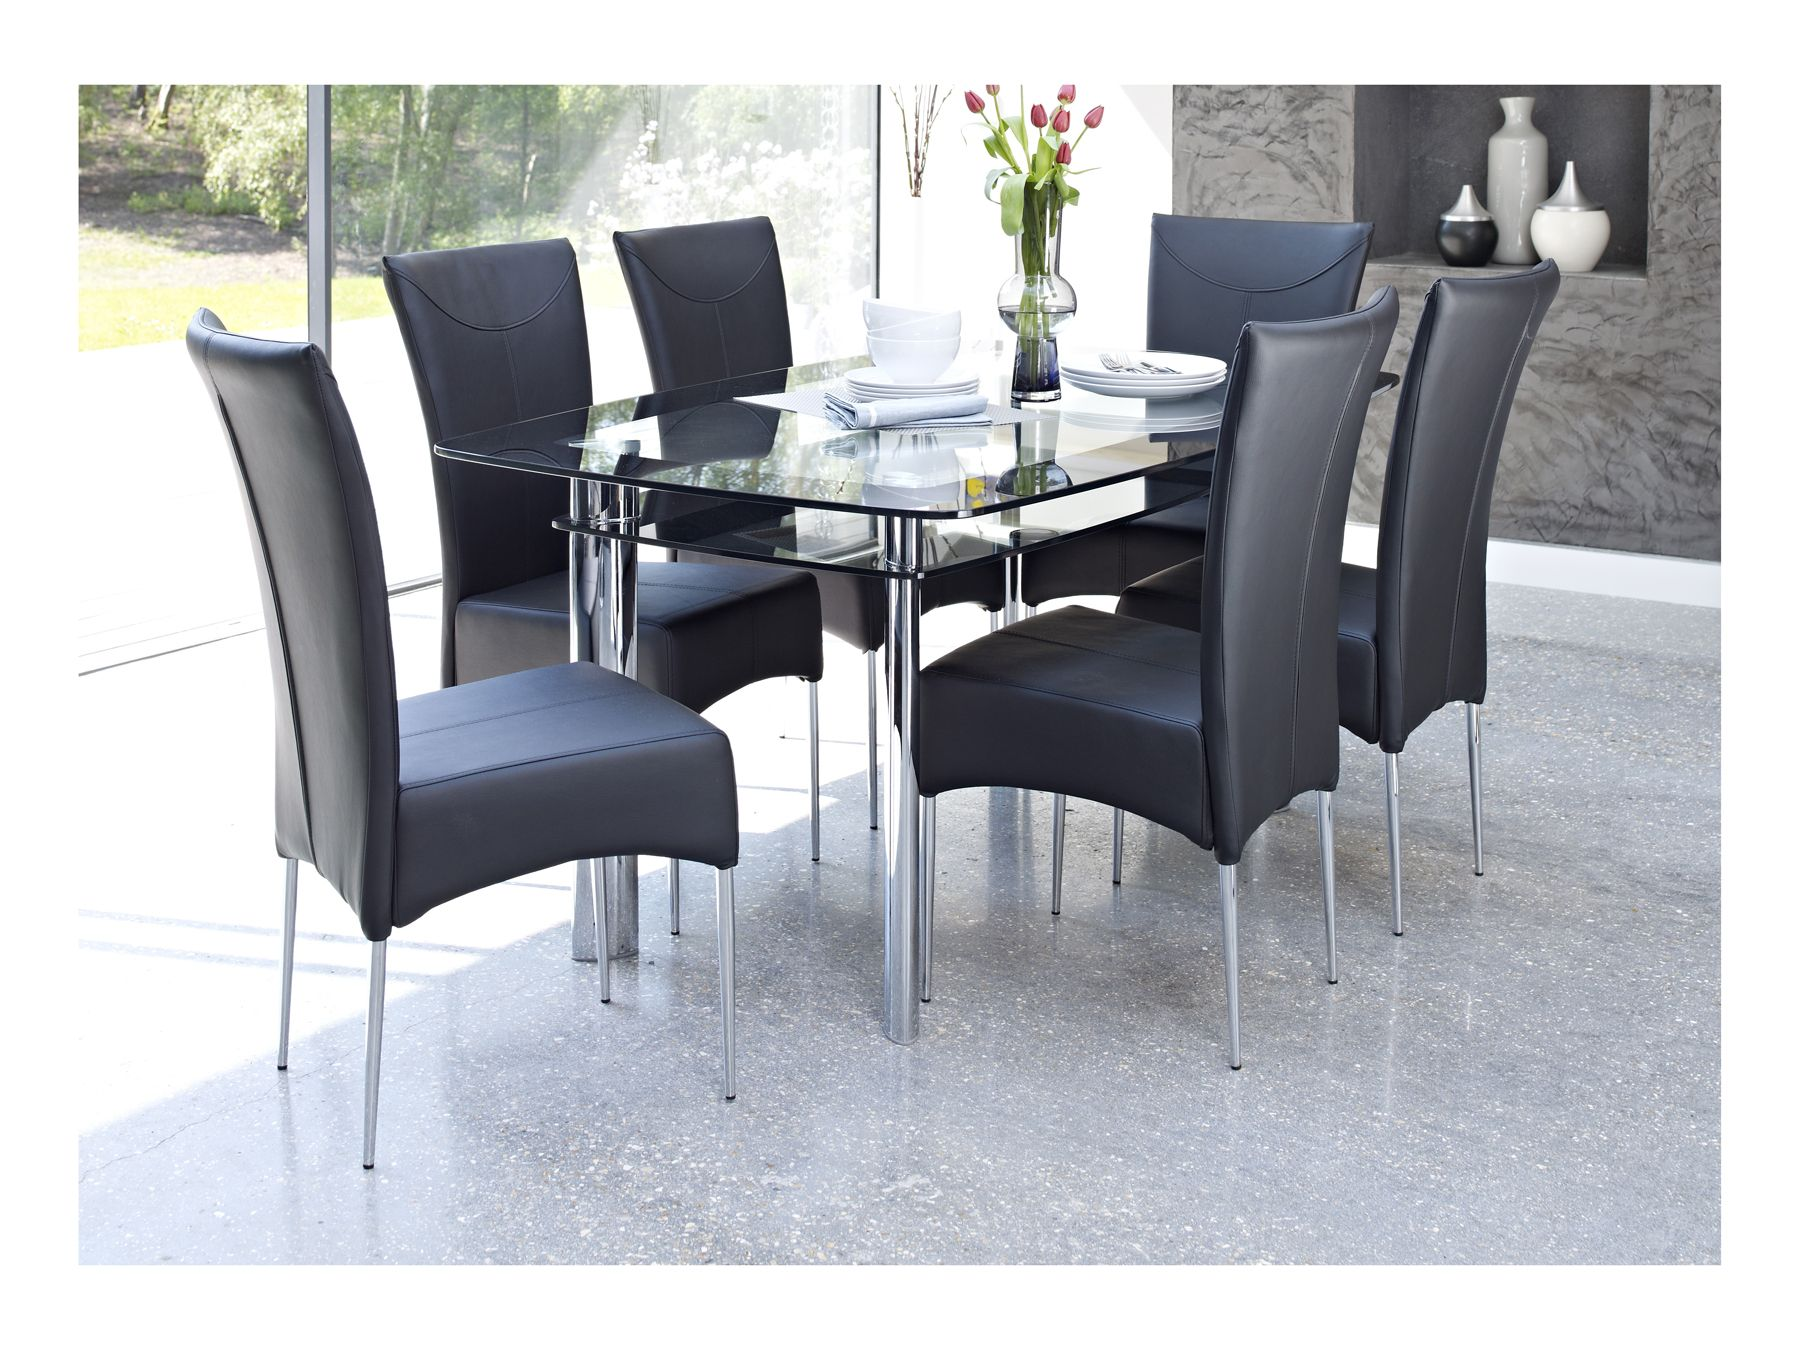 Glass dining table with black chairs whatever for Glass dining room table set